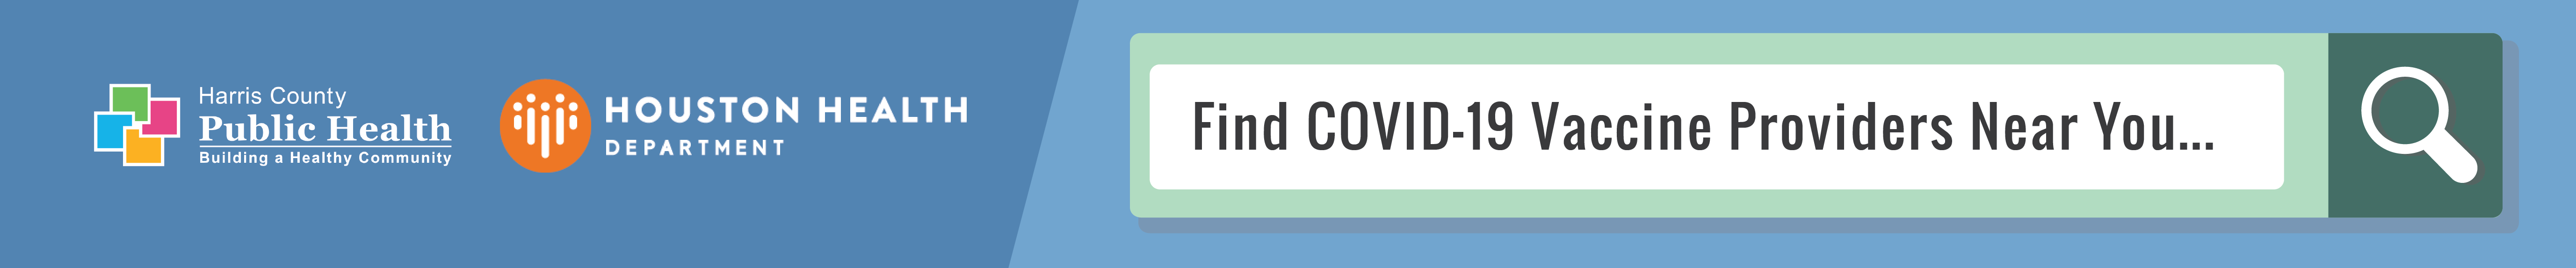 Click here to find COVID-19 vaccine providers near you.